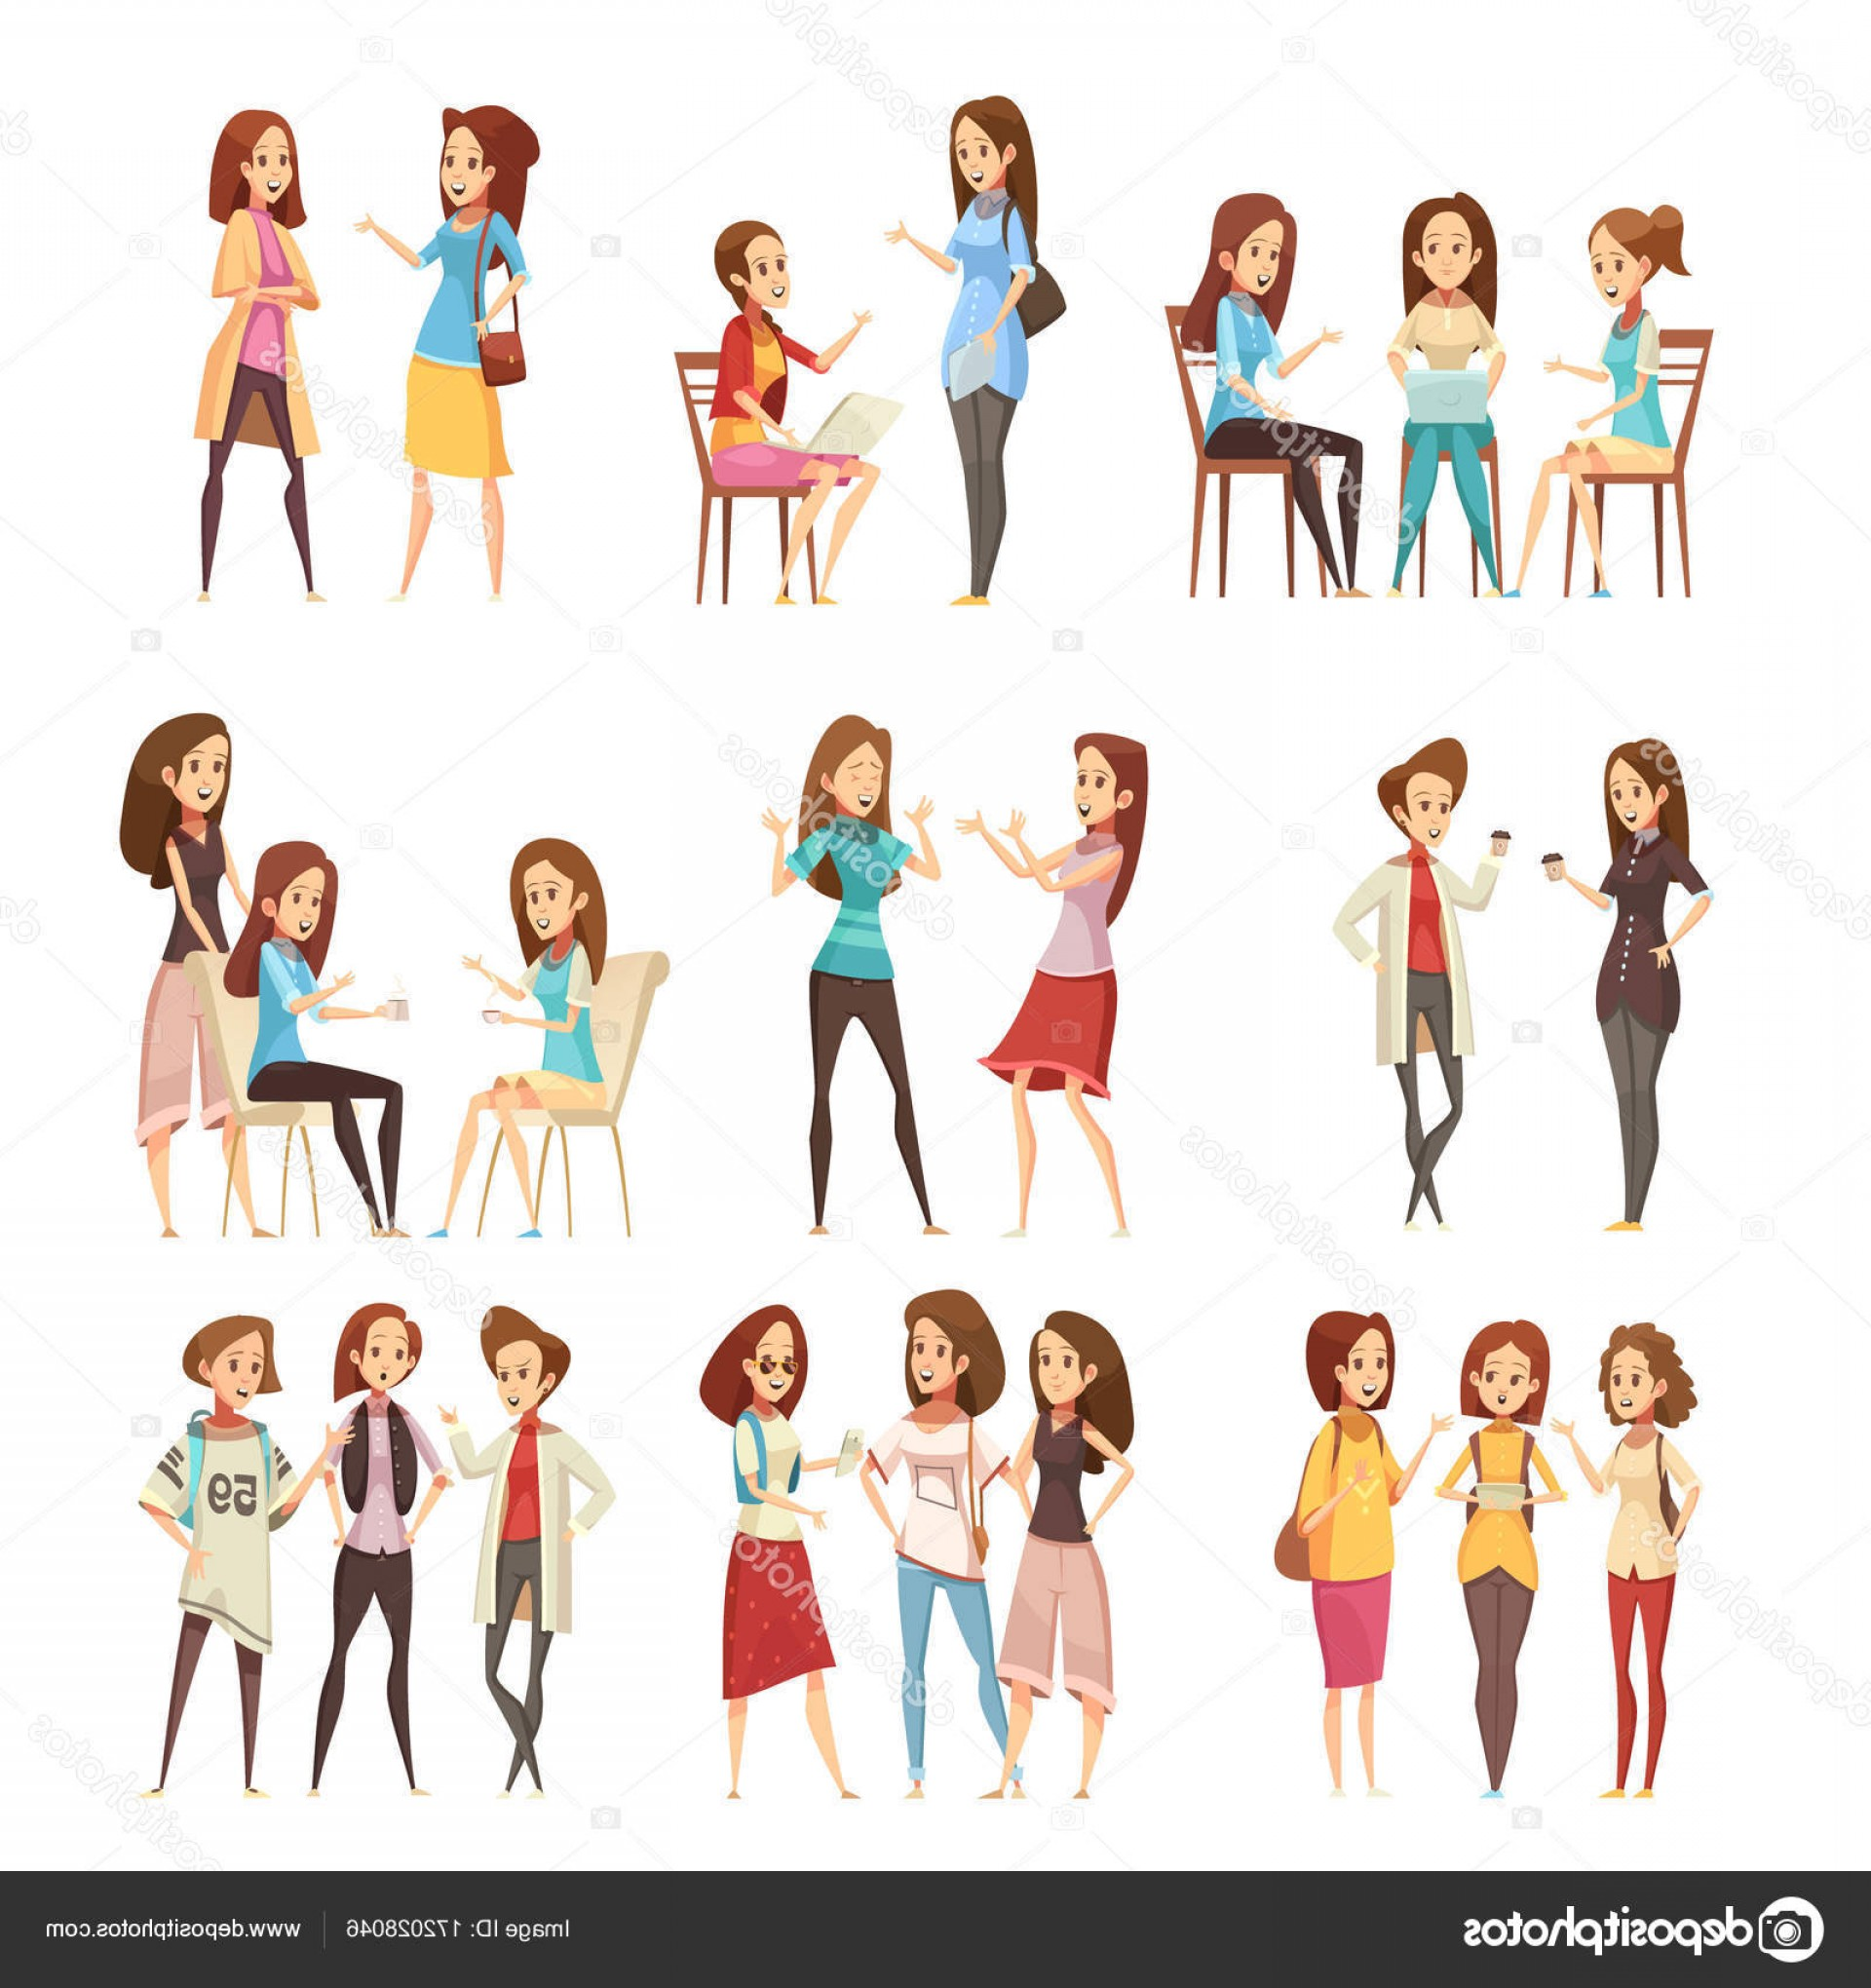 Teenage Icons Vector: Stock Illustration Teenage Girls Groups Cartoon Icons